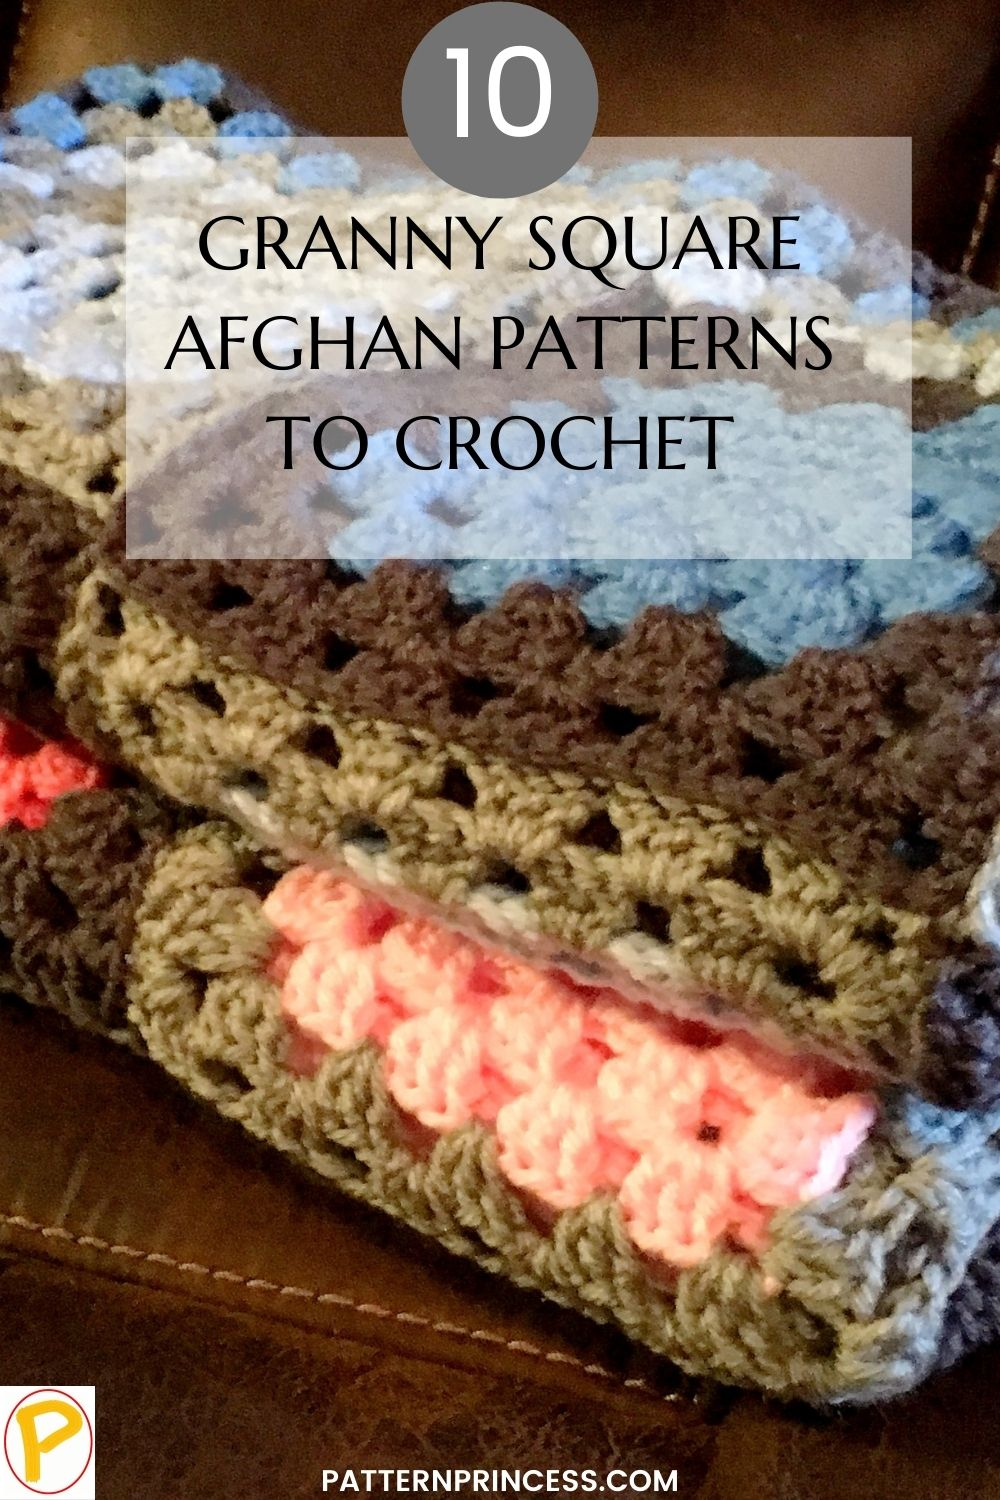 10 Granny Square Afghan Patterns to Crochet